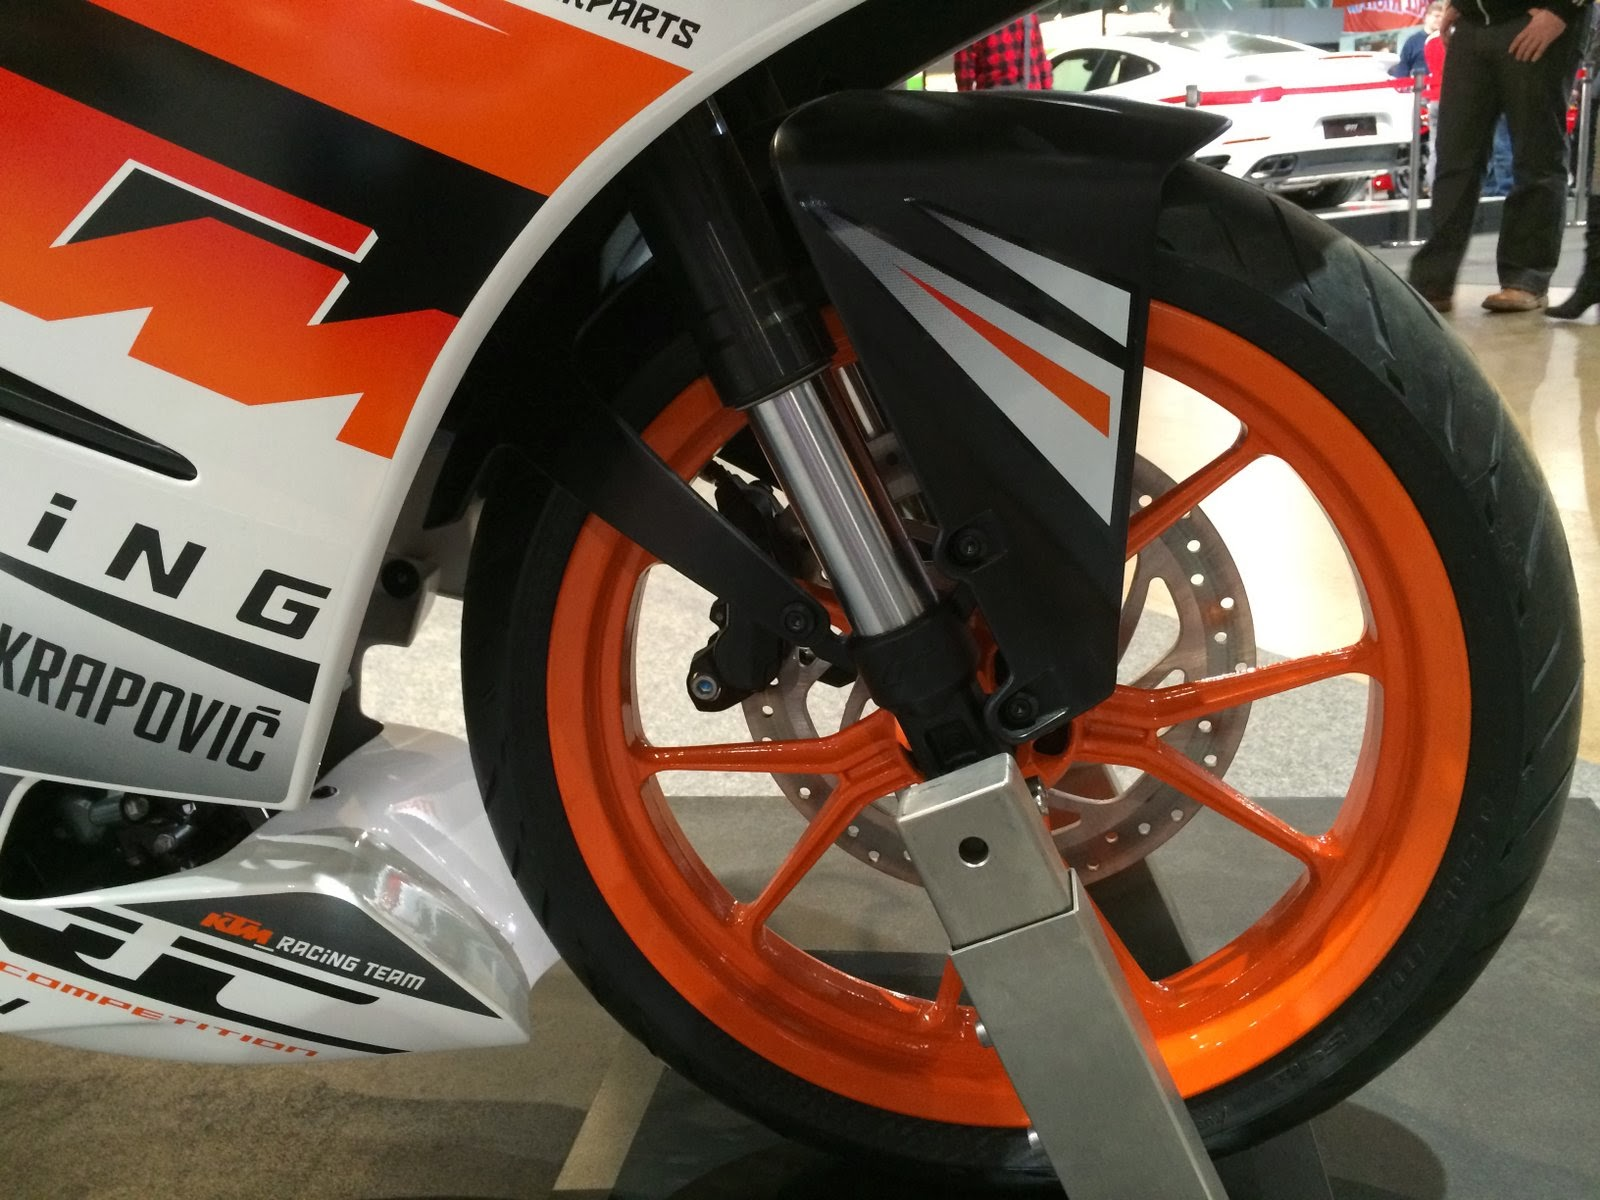 Project Ktm 690 Enduro R The Motorcycle Show